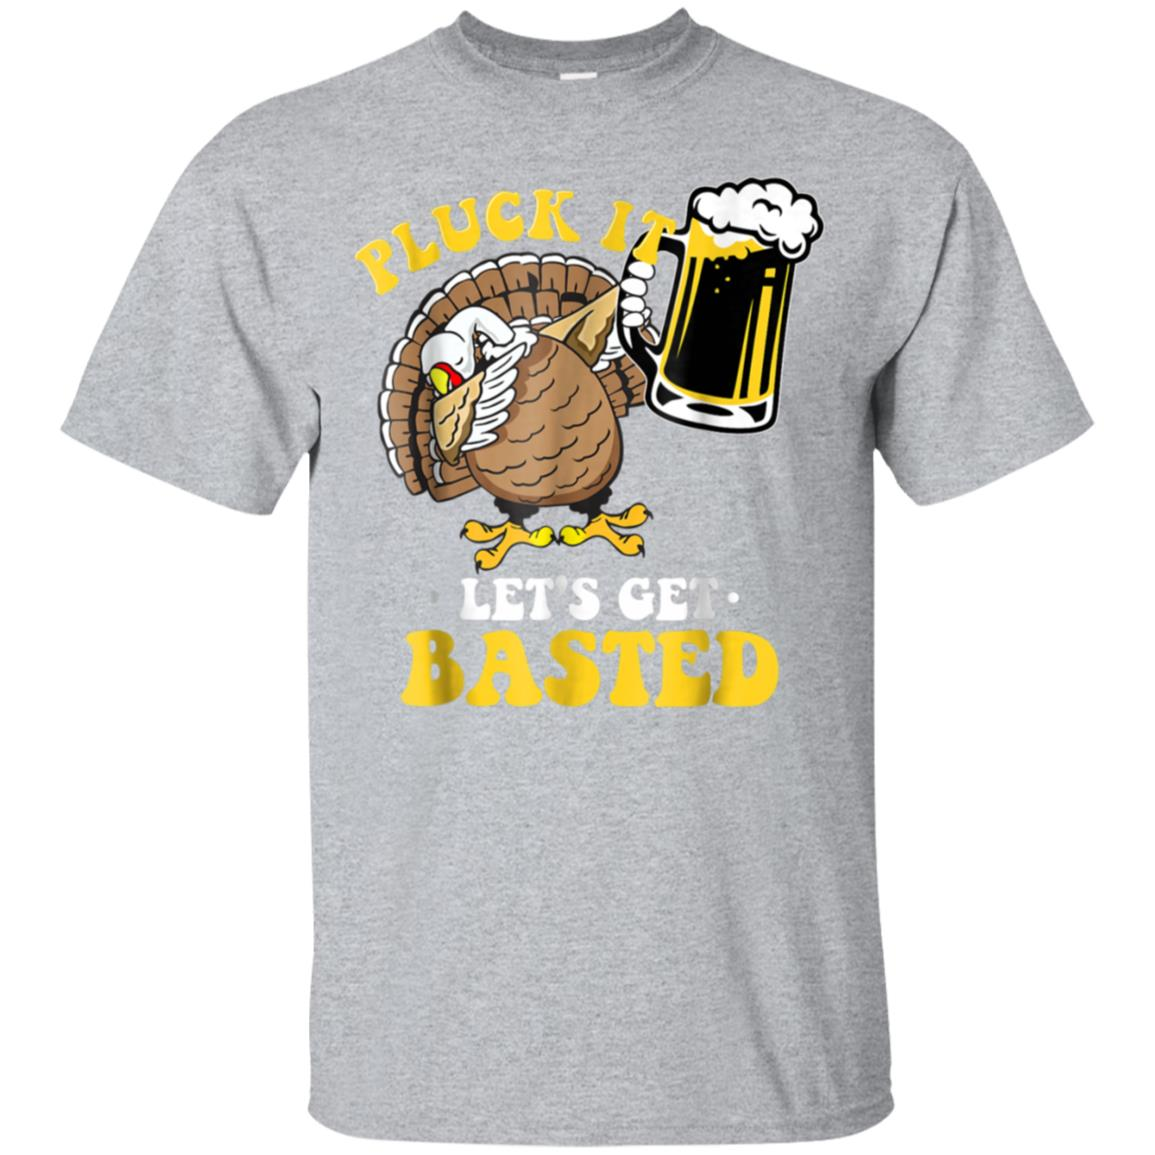 Funny Turkey Thanksgiving Shirt Let's Get Basted Shirt 99promocode